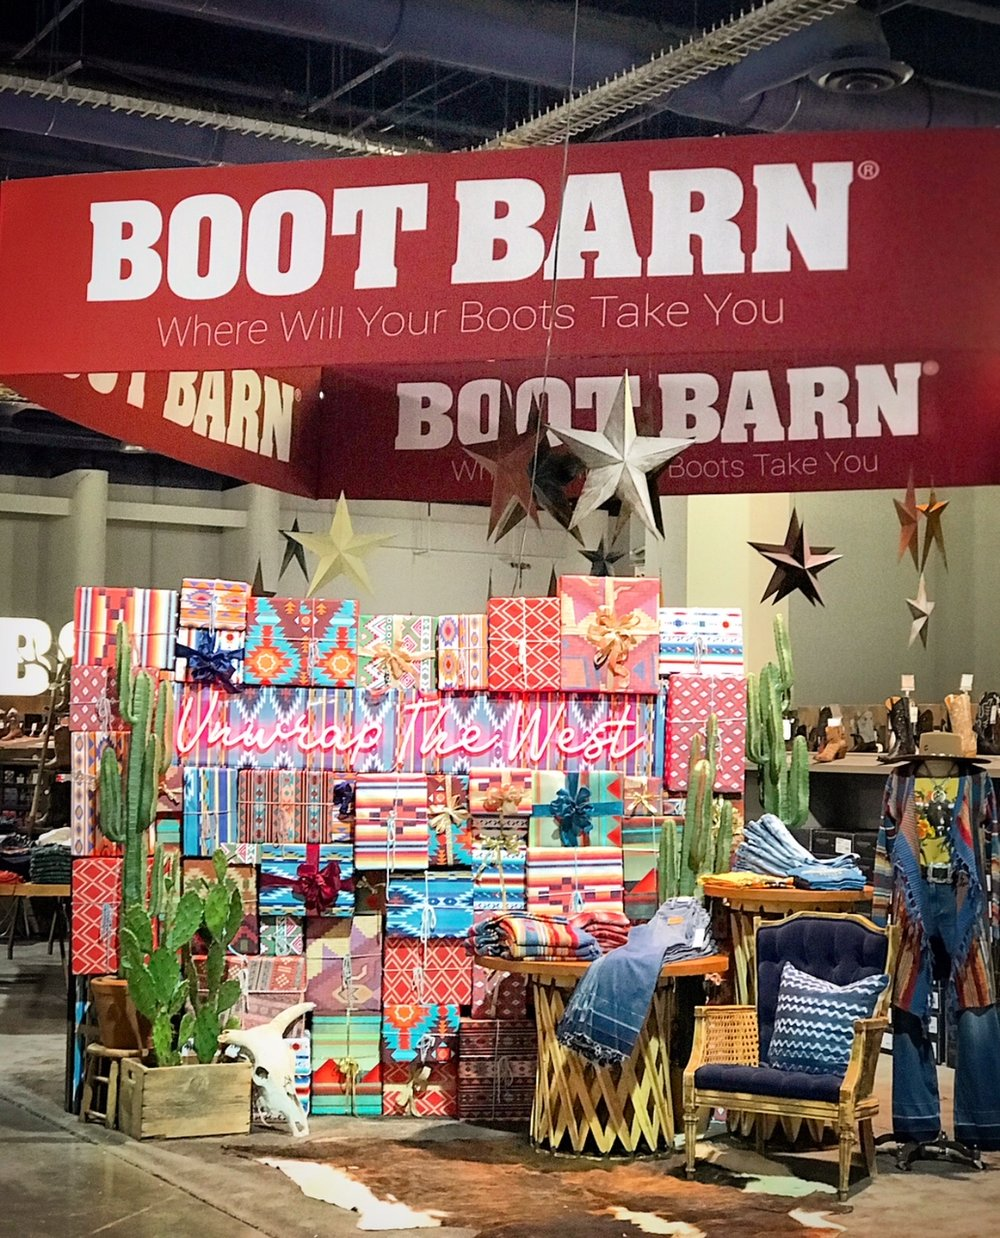 Custom built Modern - Southwestern step and repeat wall with presents, neon sign and cactuses for an expo center build out at the National Finals Rodeo Cowboy Christmas